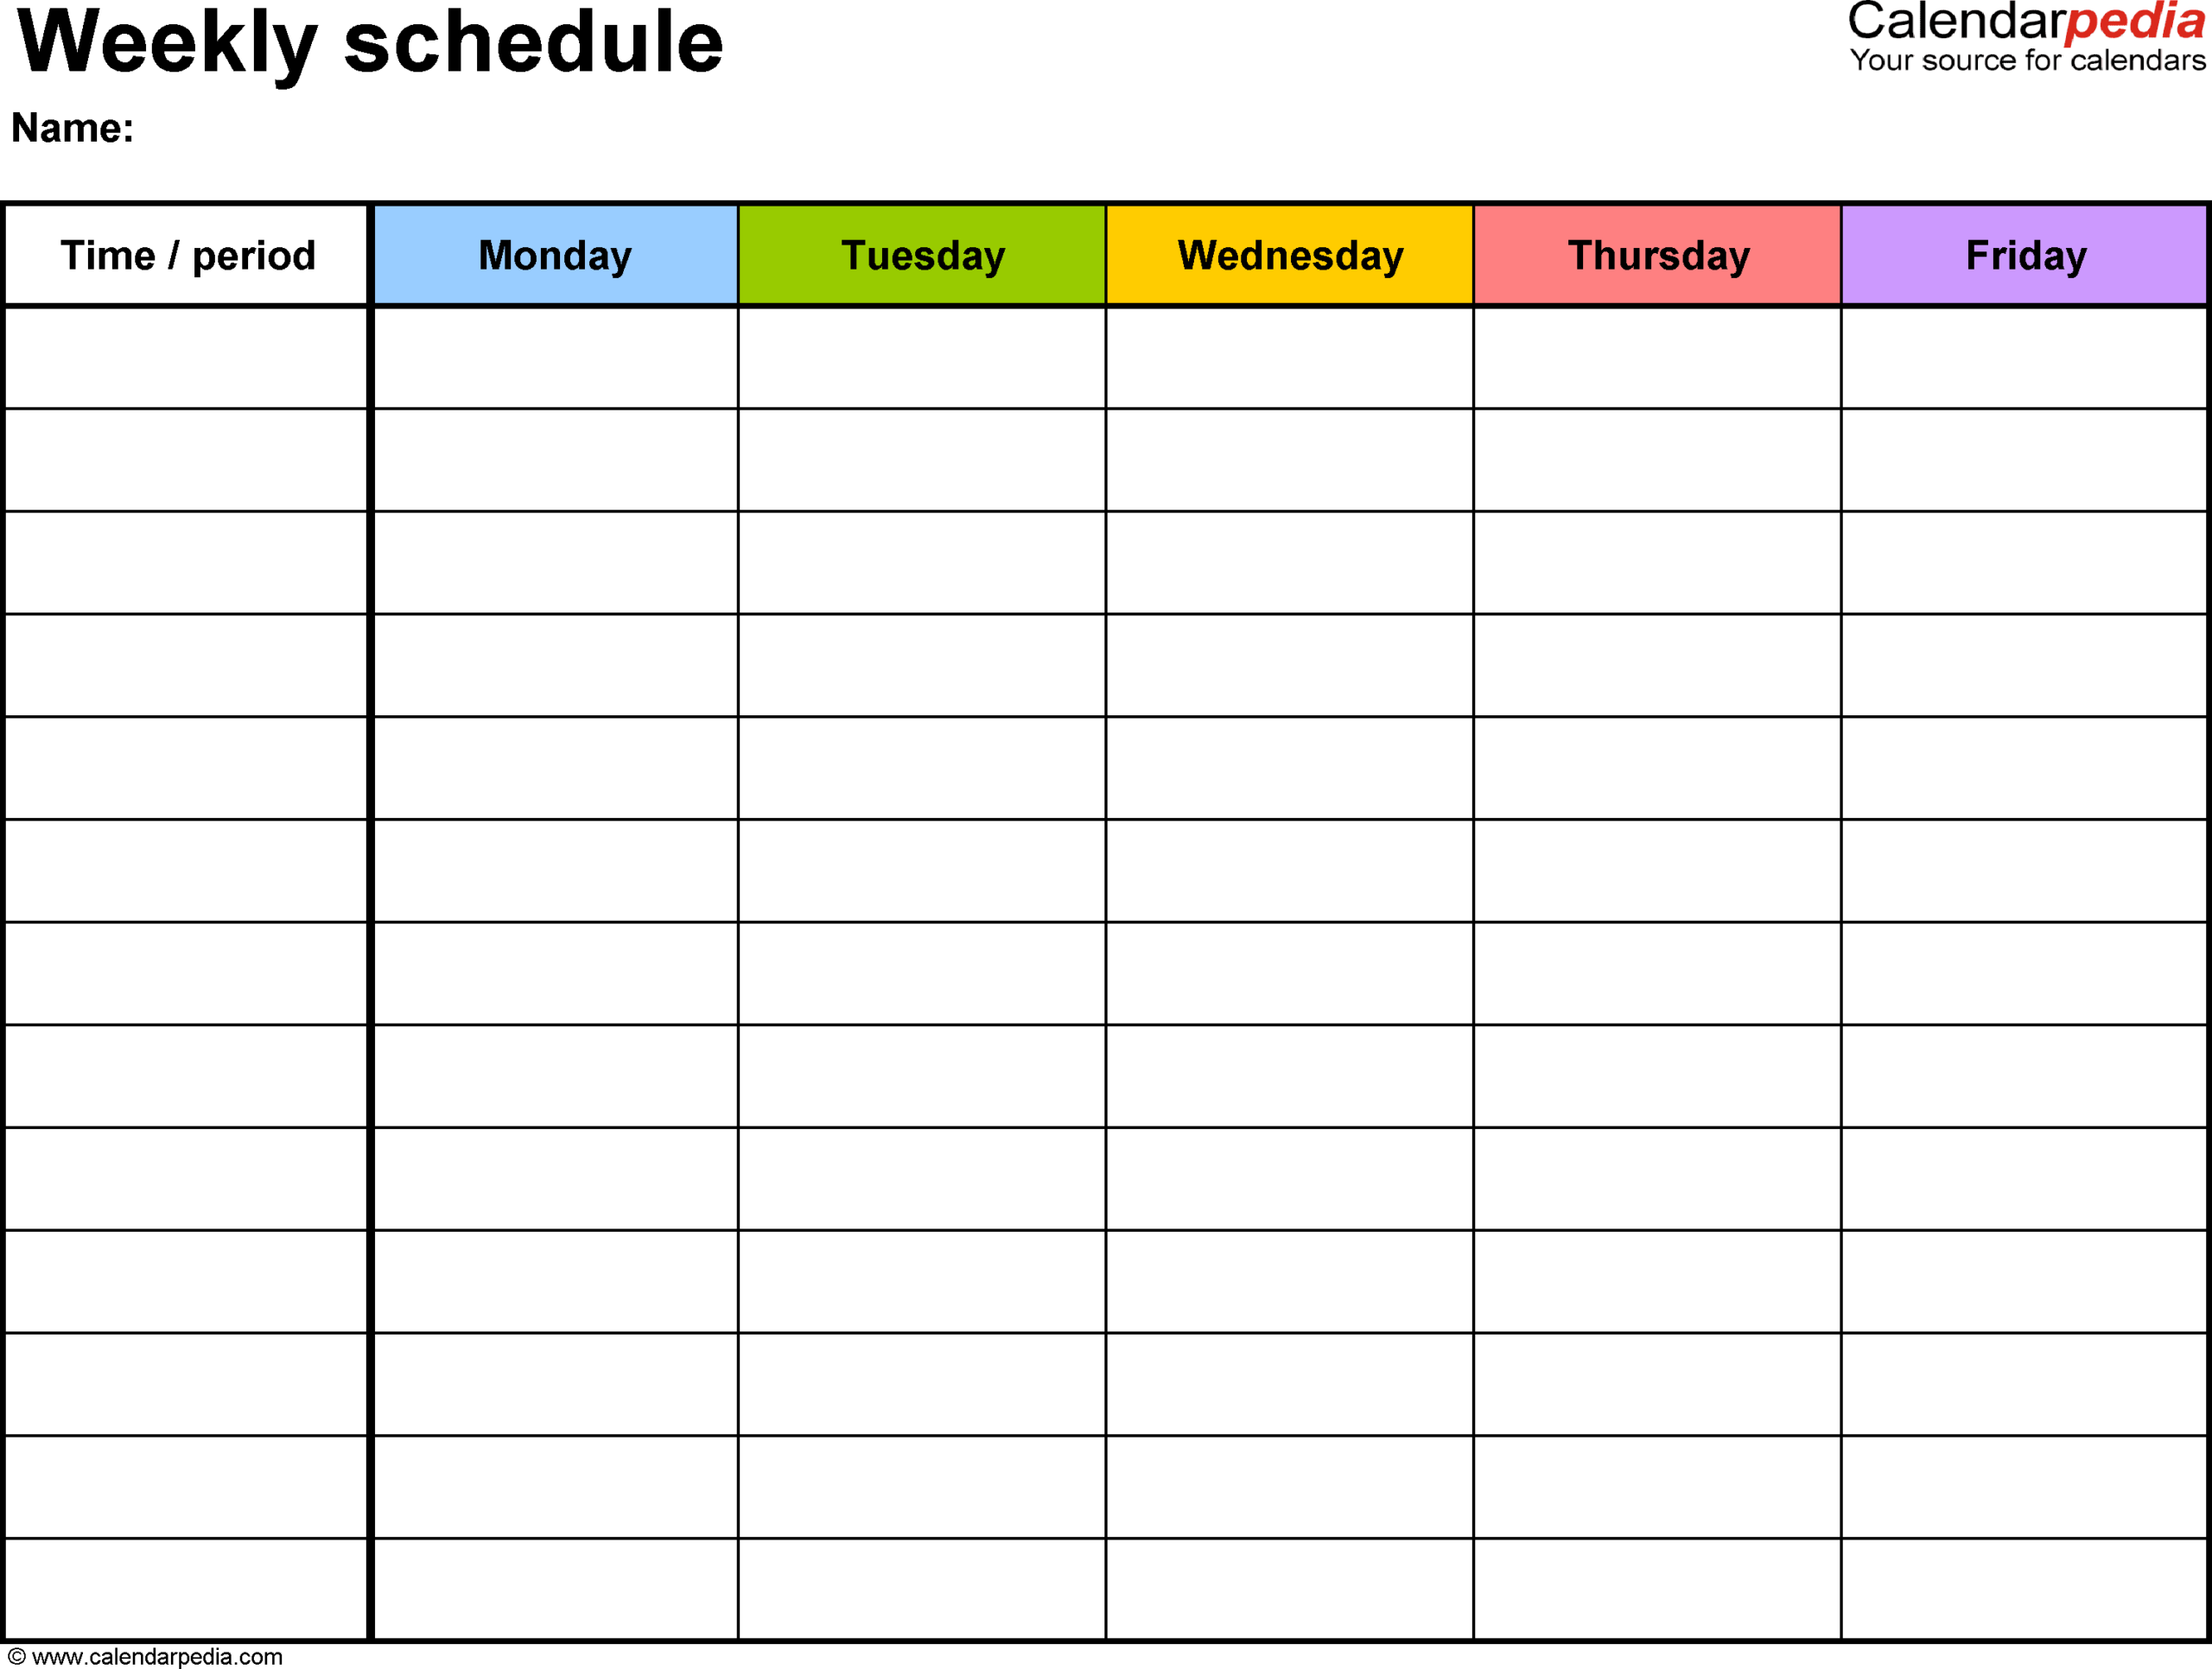 Weekly Schedule Template For Word Version 1: Landscape 1